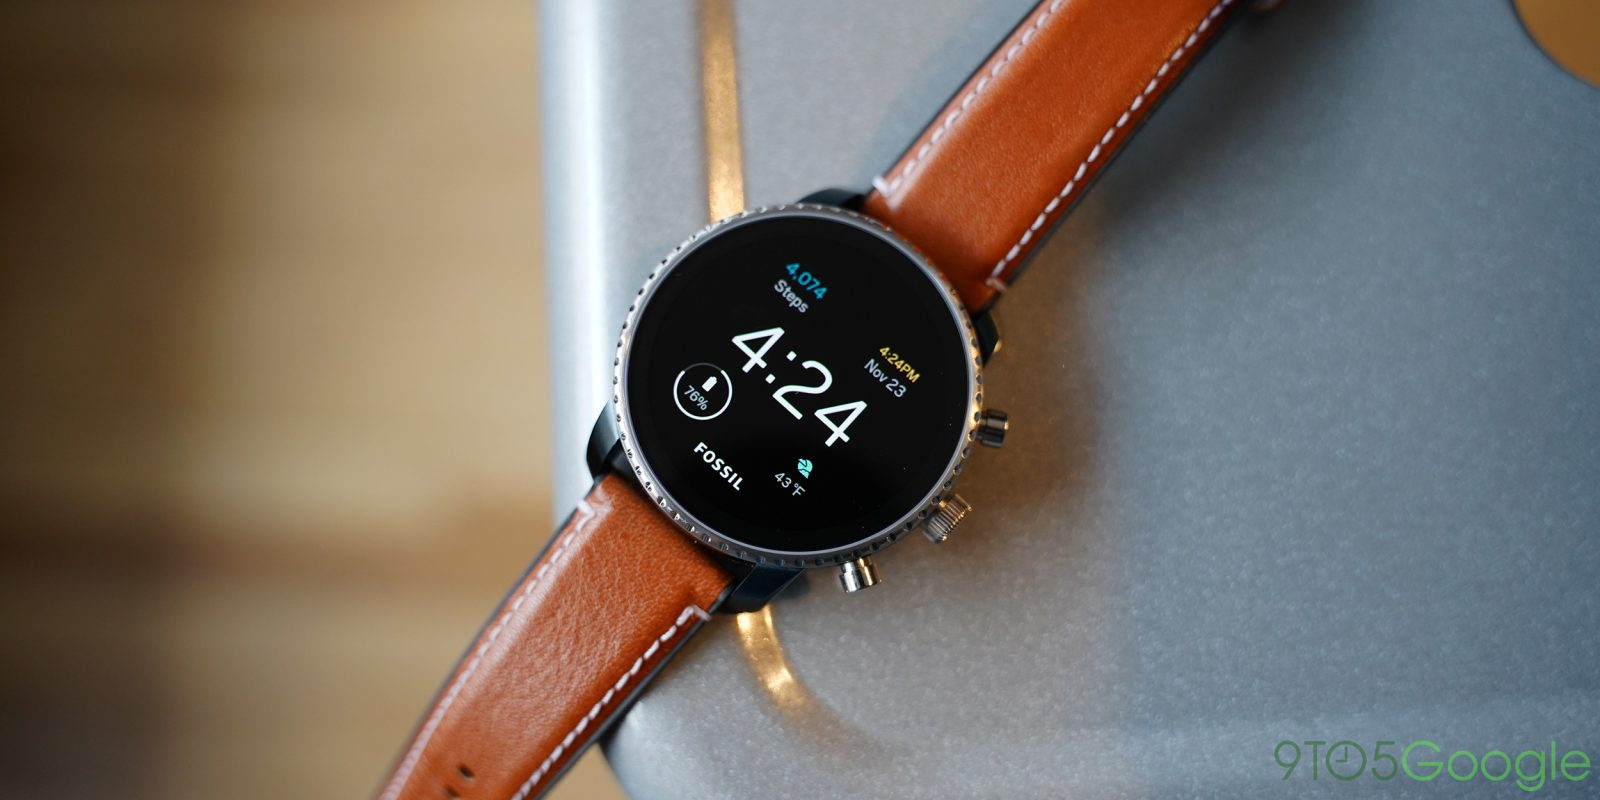 Wear OS performance seems to get better when you turn off auto-brightness